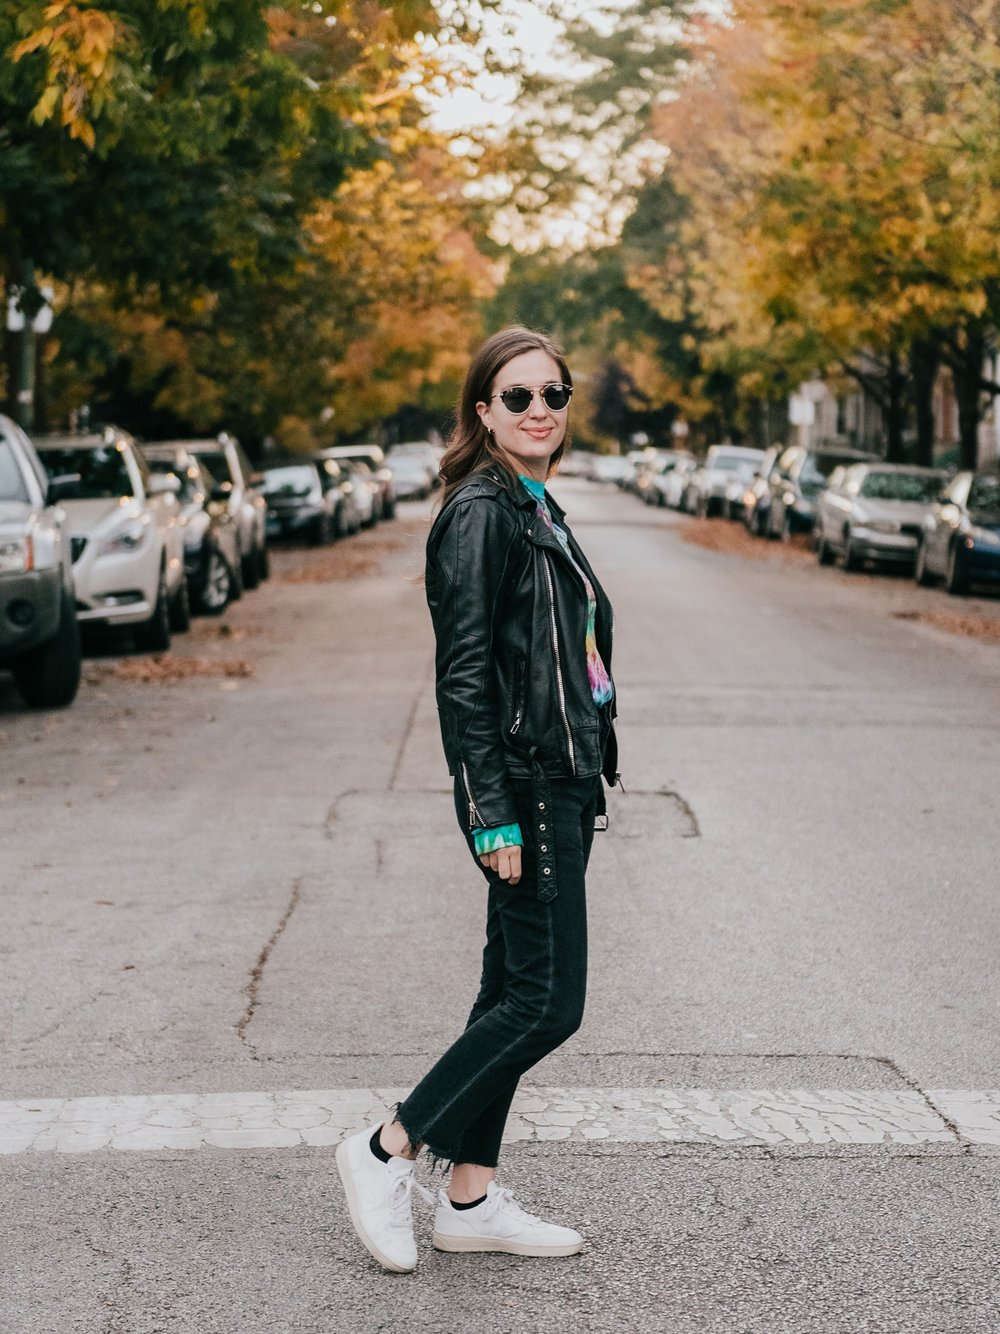 Casual Saturday outfit with leather jacket - A Week Of Ethical Outfits With Heart With Carly Gerber From Hippie + Heart on The Good Trade